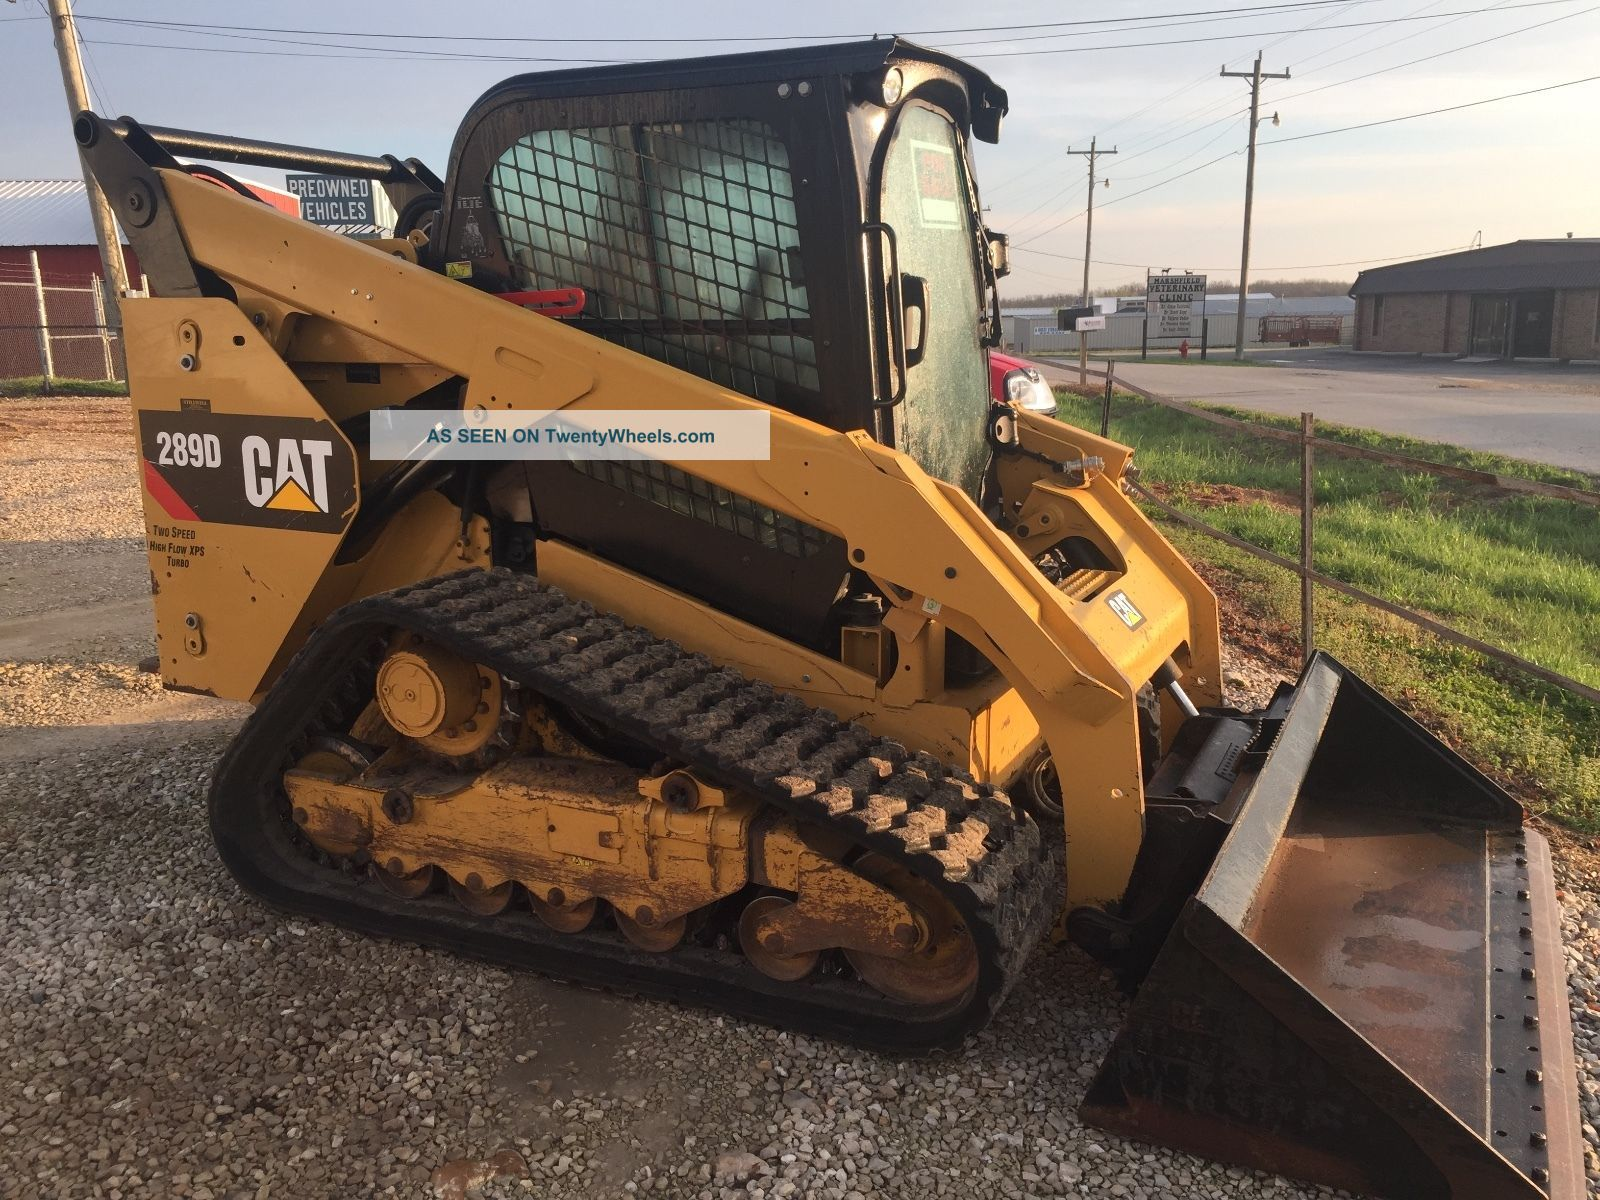 2014 Caterpillar 289d Heat/air Backup Camera Skid Steer Loaders photo